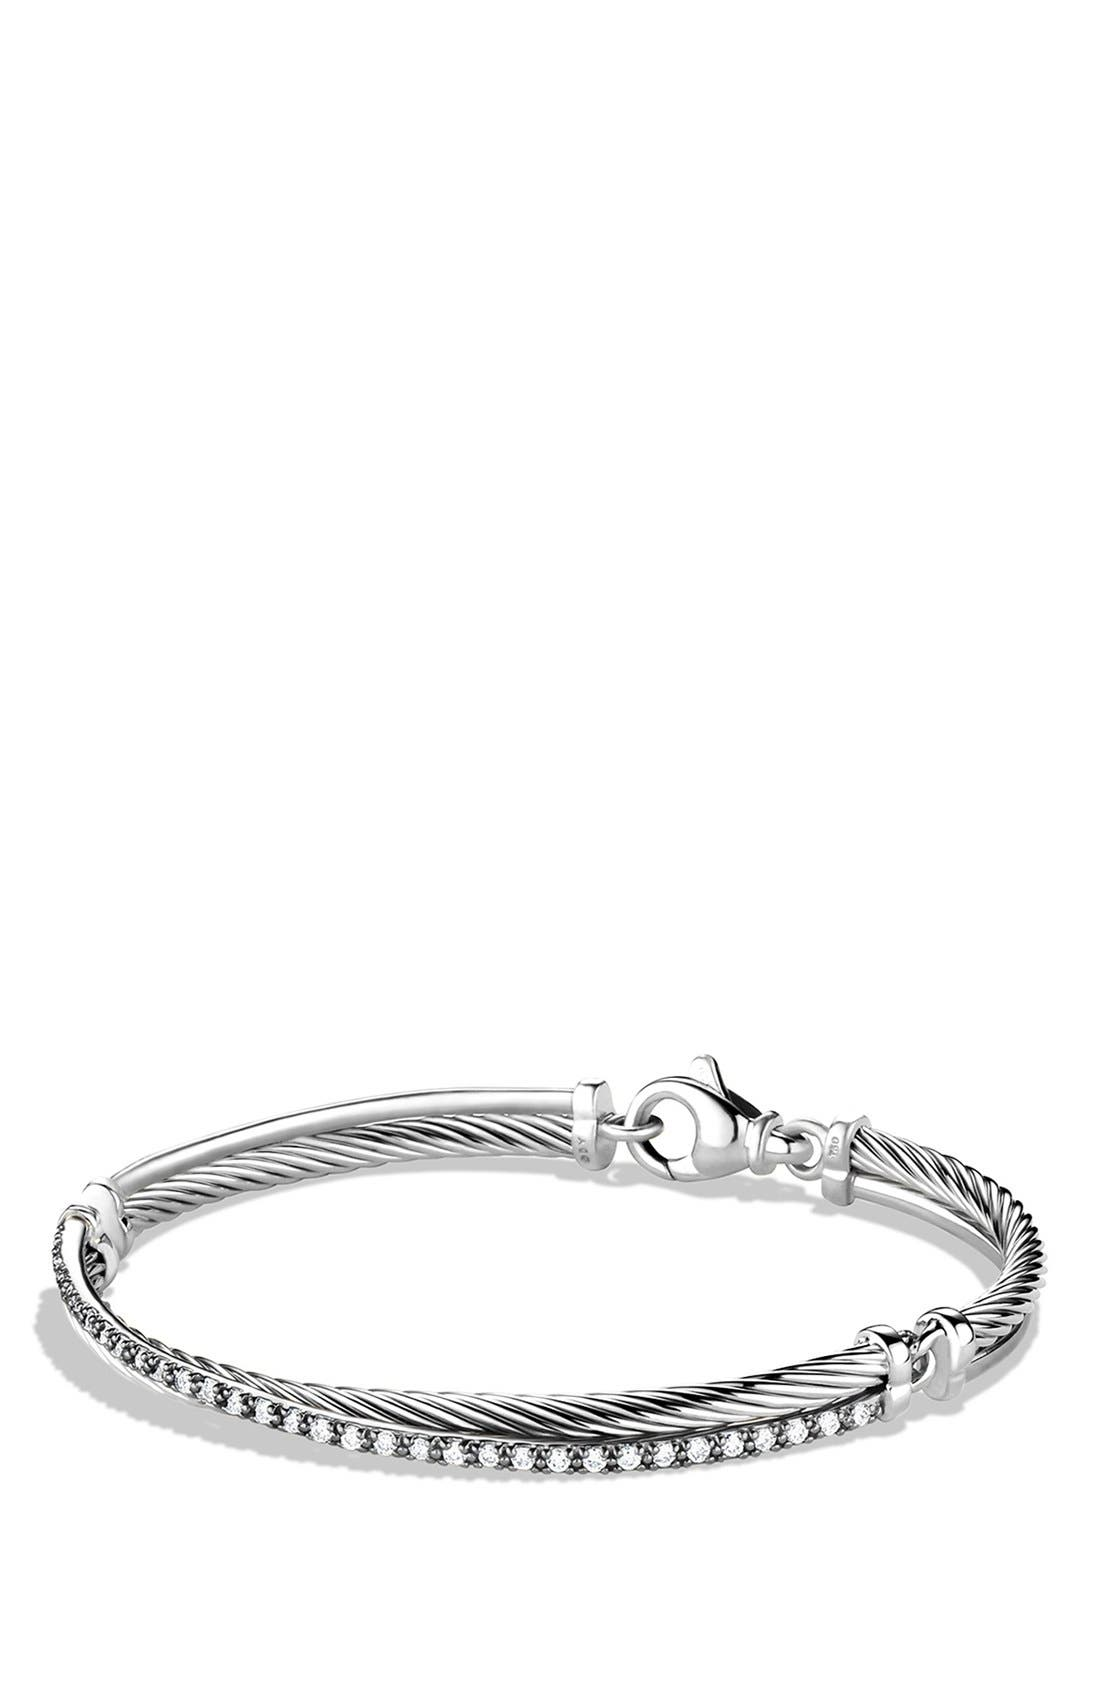 DAVID YURMAN Crossover Bracelet with Diamonds